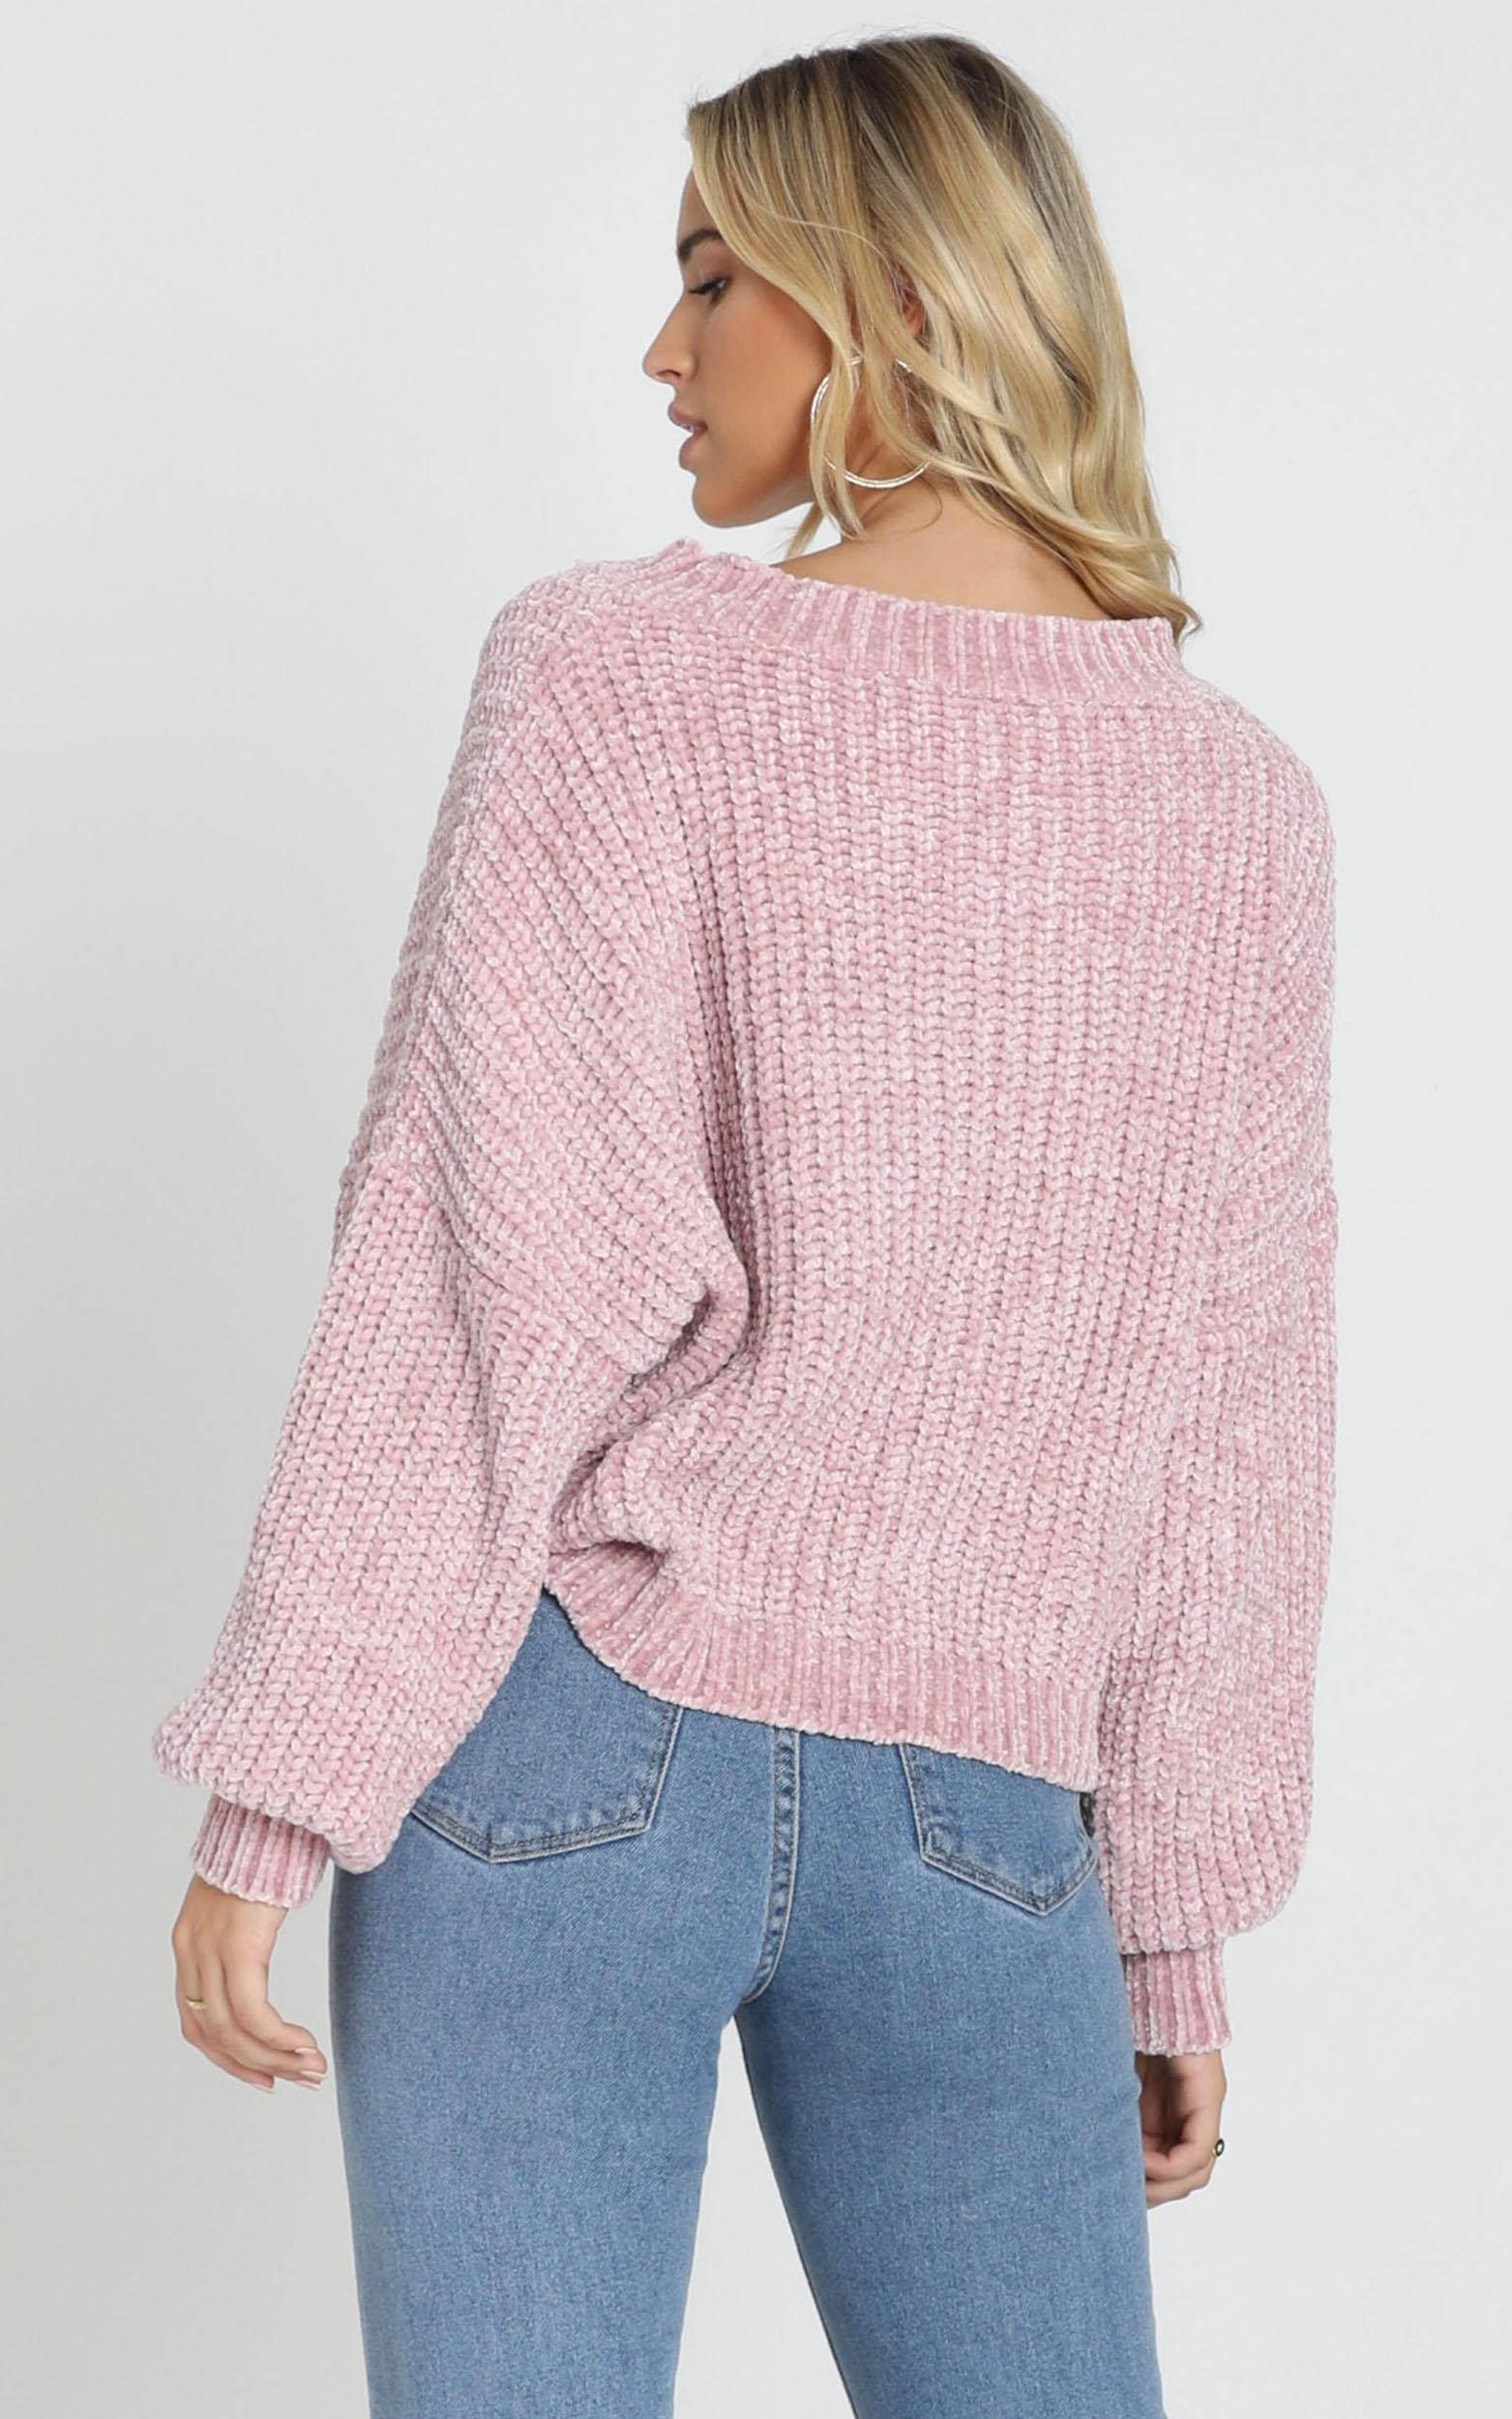 Little Do You Know knit sweater in mauve chenille - M/L, Mauve, hi-res image number null